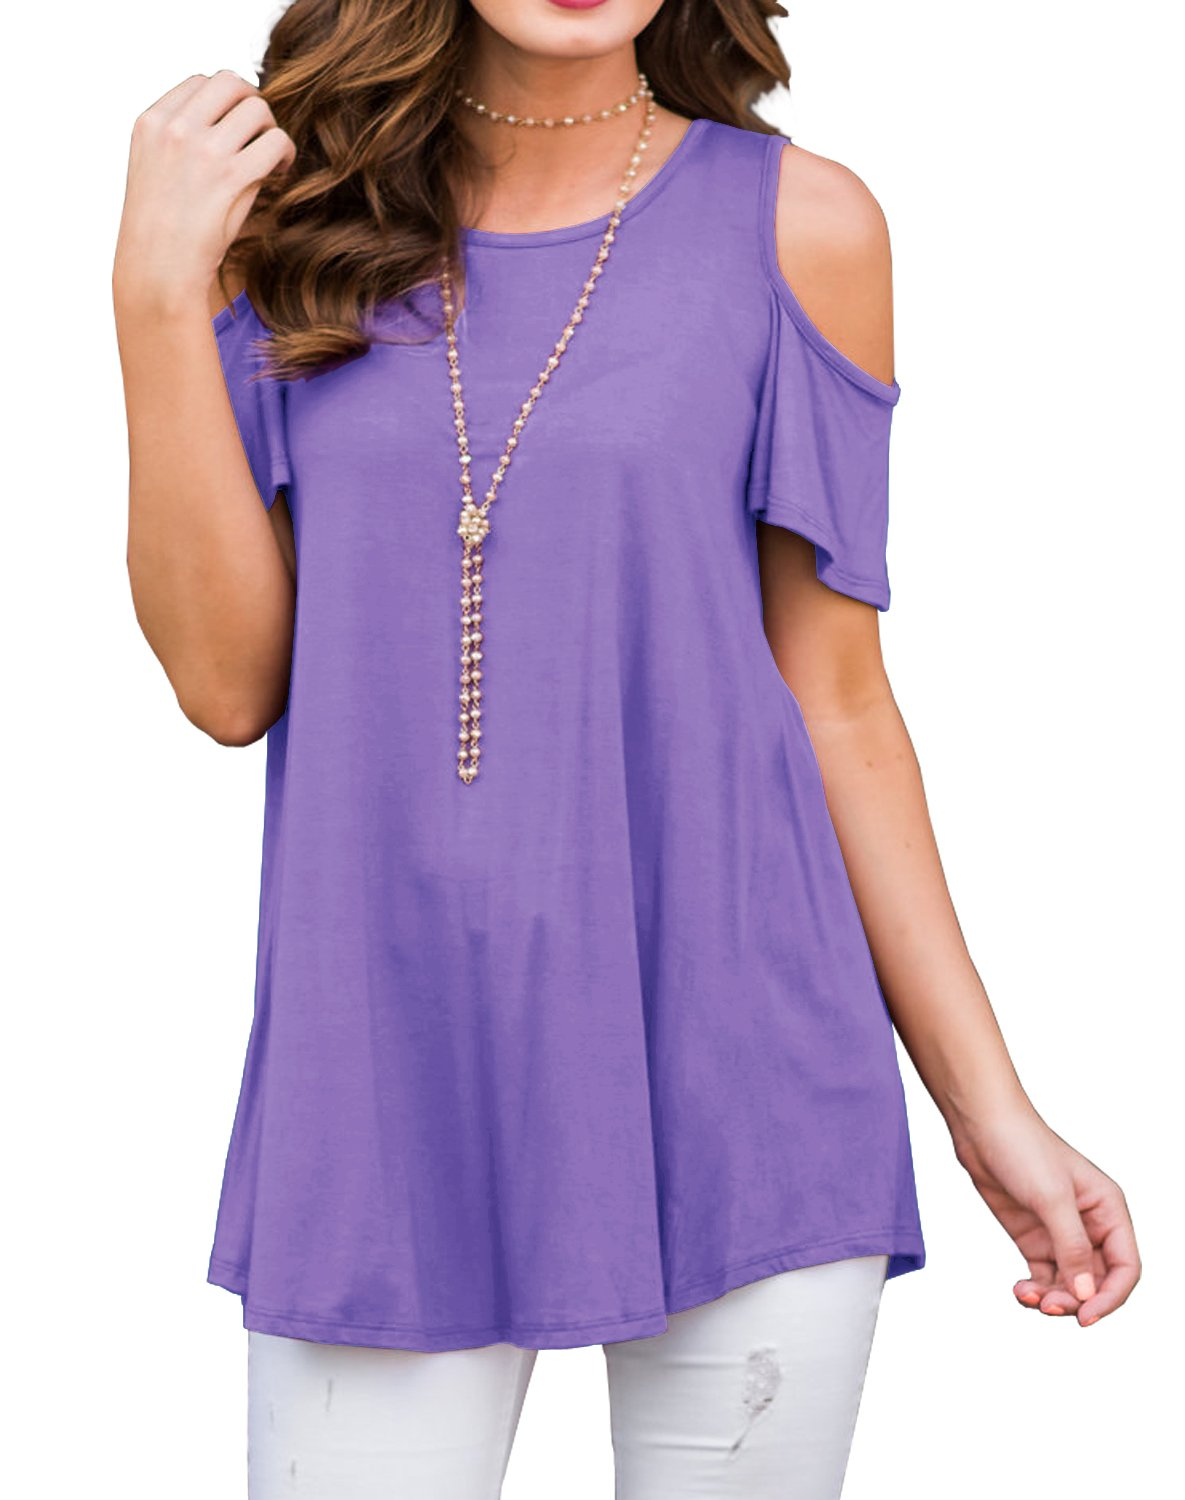 PrinStory Women's Short Sleeve Casual Cold Shoulder Tunic Tops Loose Blouse Shirts Light Purple-2XL